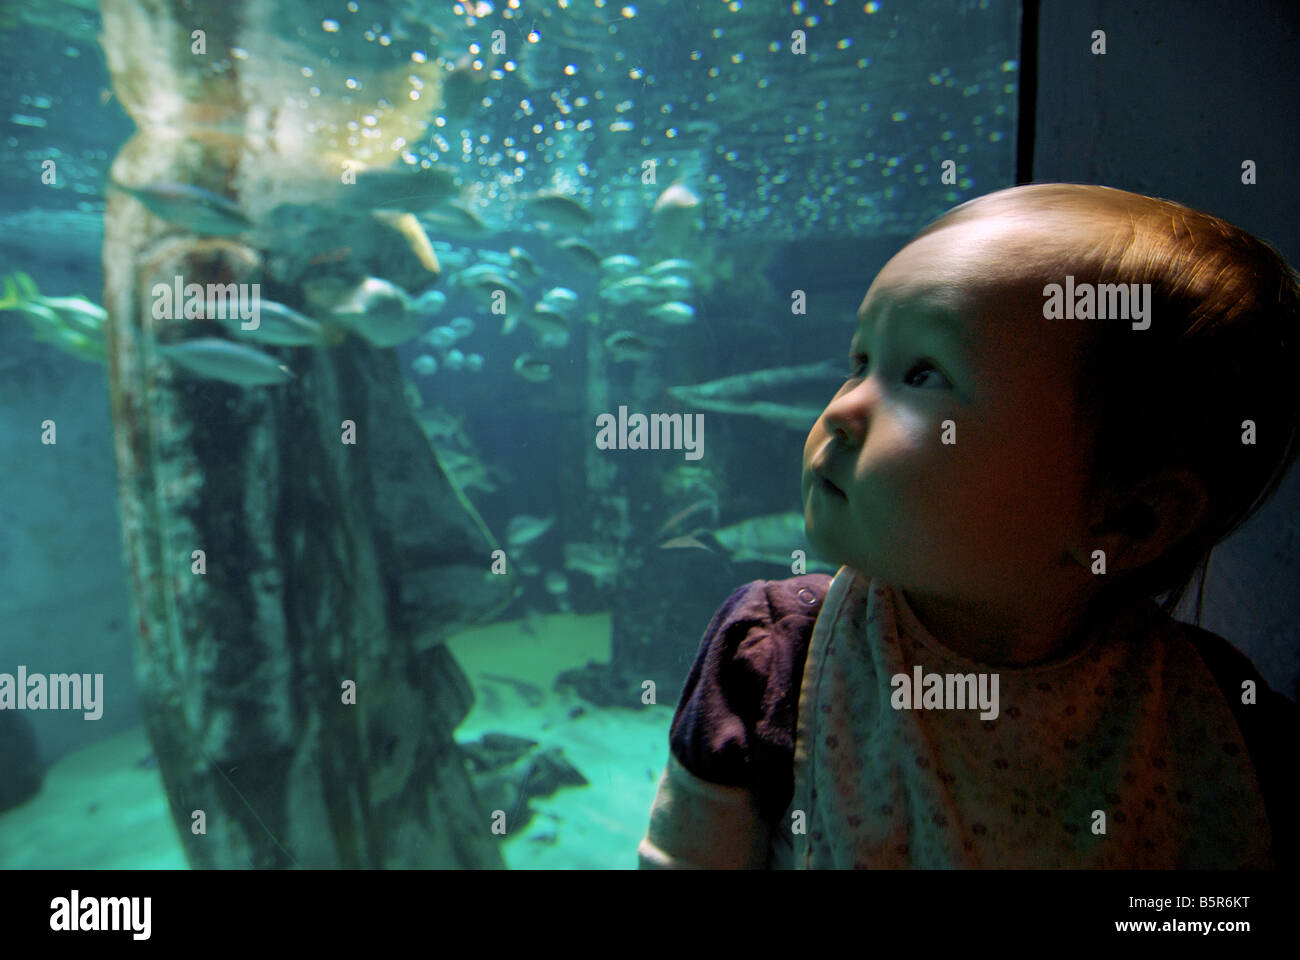 Young child at London Aquarium, London, England - Stock Image